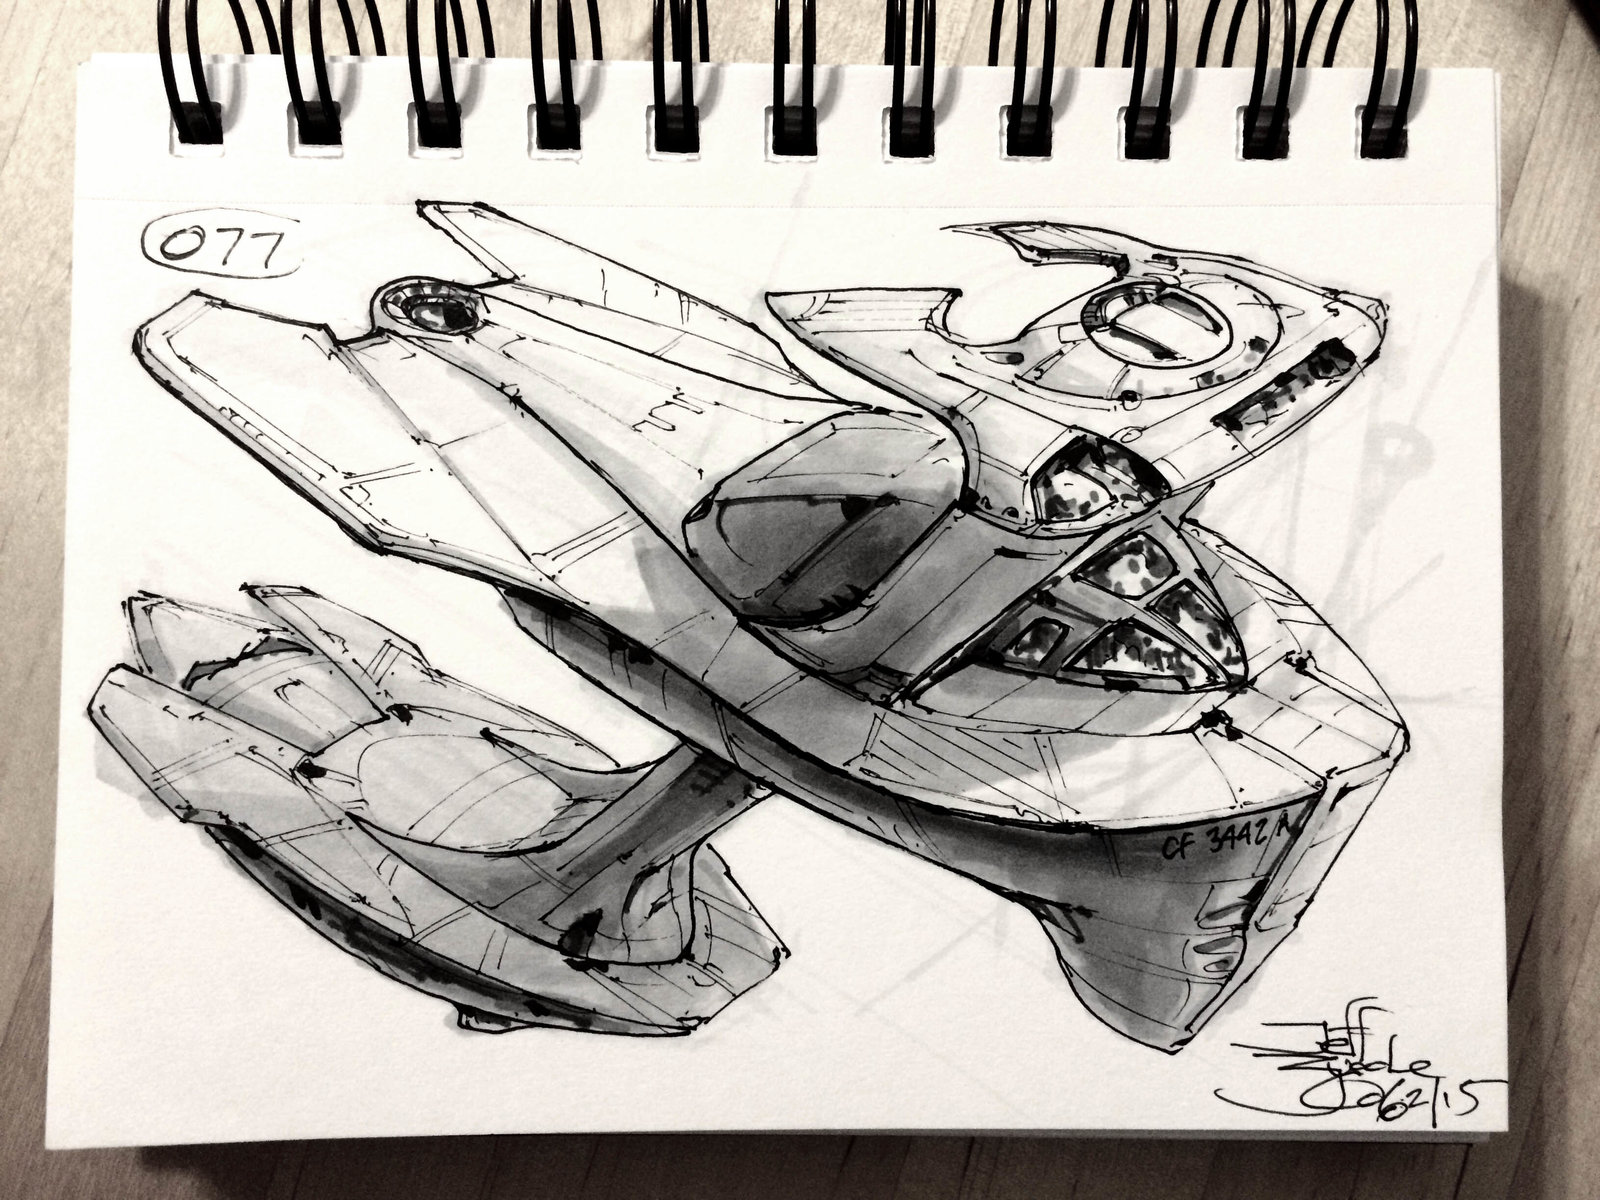 SpaceshipADay 077